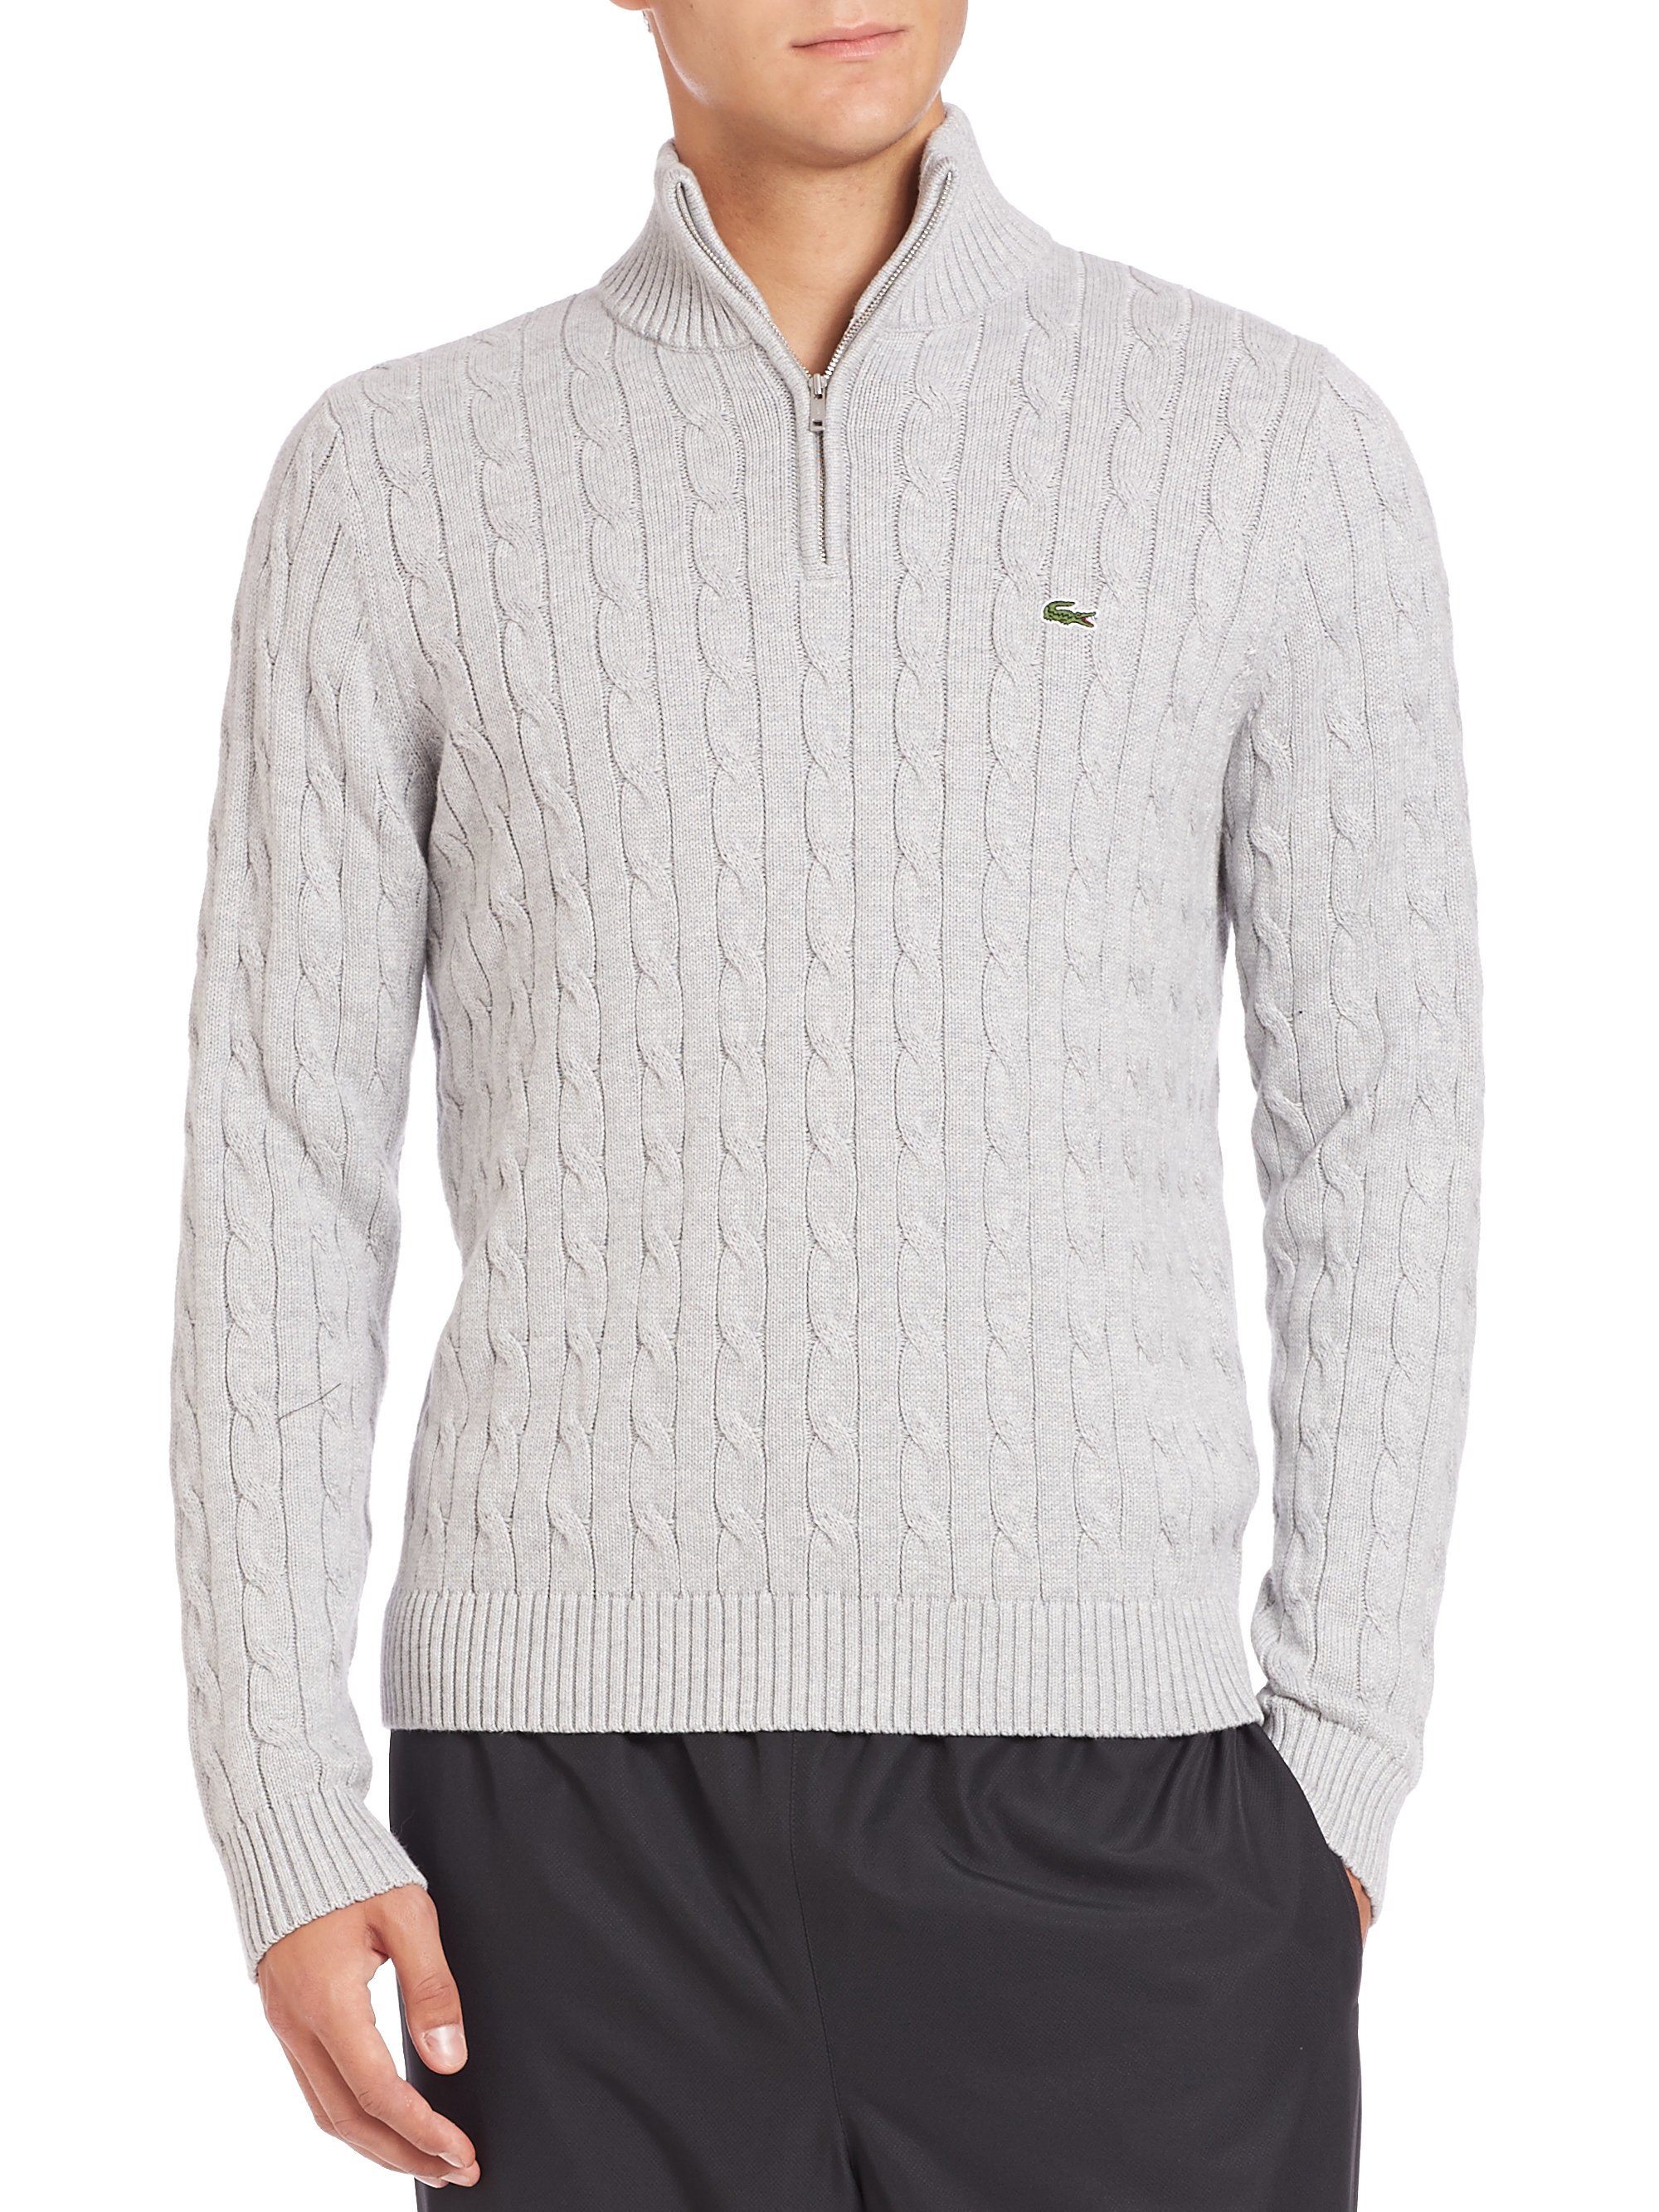 Lacoste Mens Cable Knit Sweater English Sweater Vest